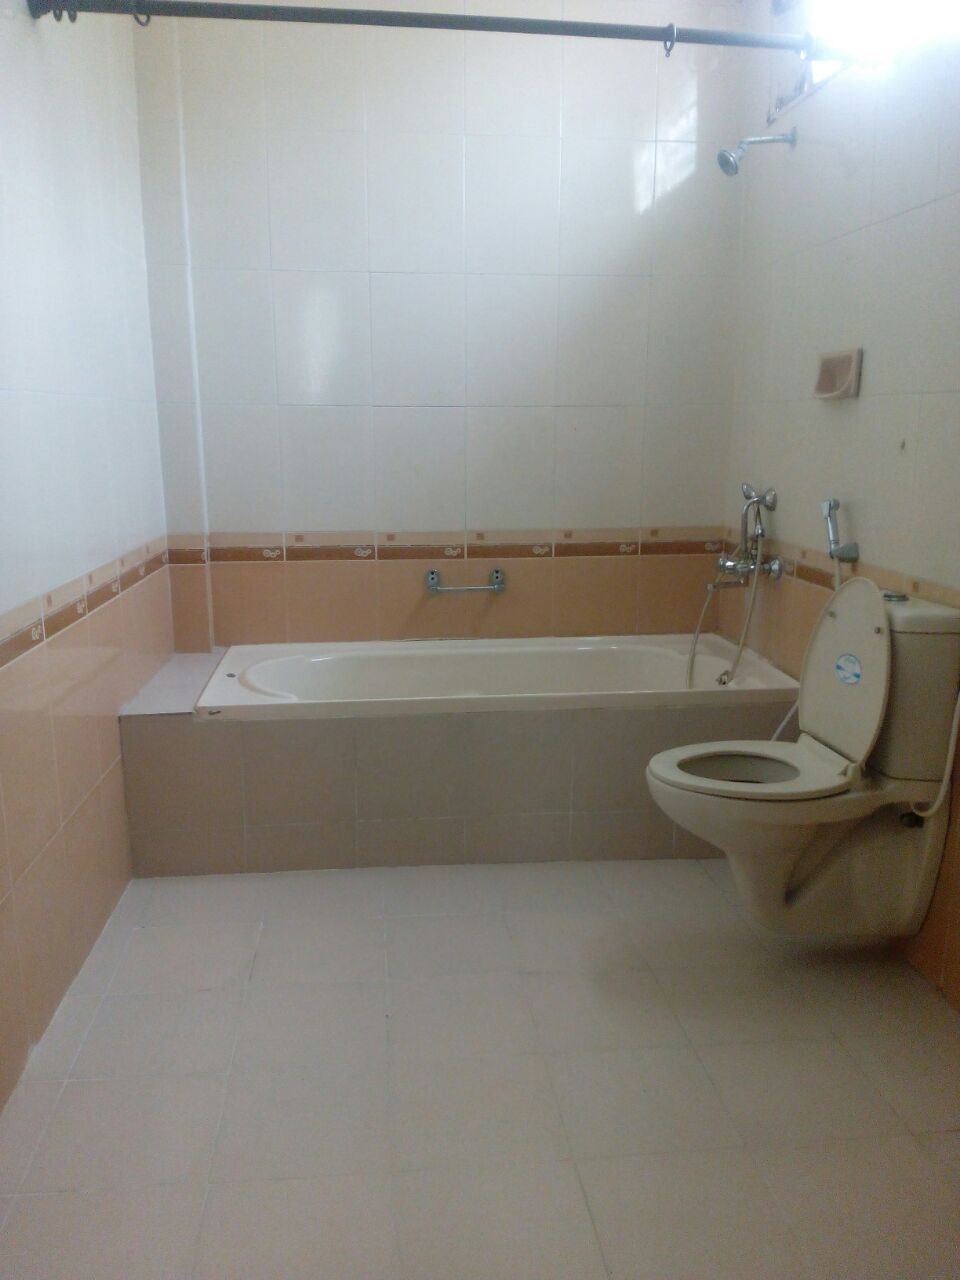 Resorts Mobile No 9381017742 By Apple Beach House And Resorts Private Swimming Pool In Ecr